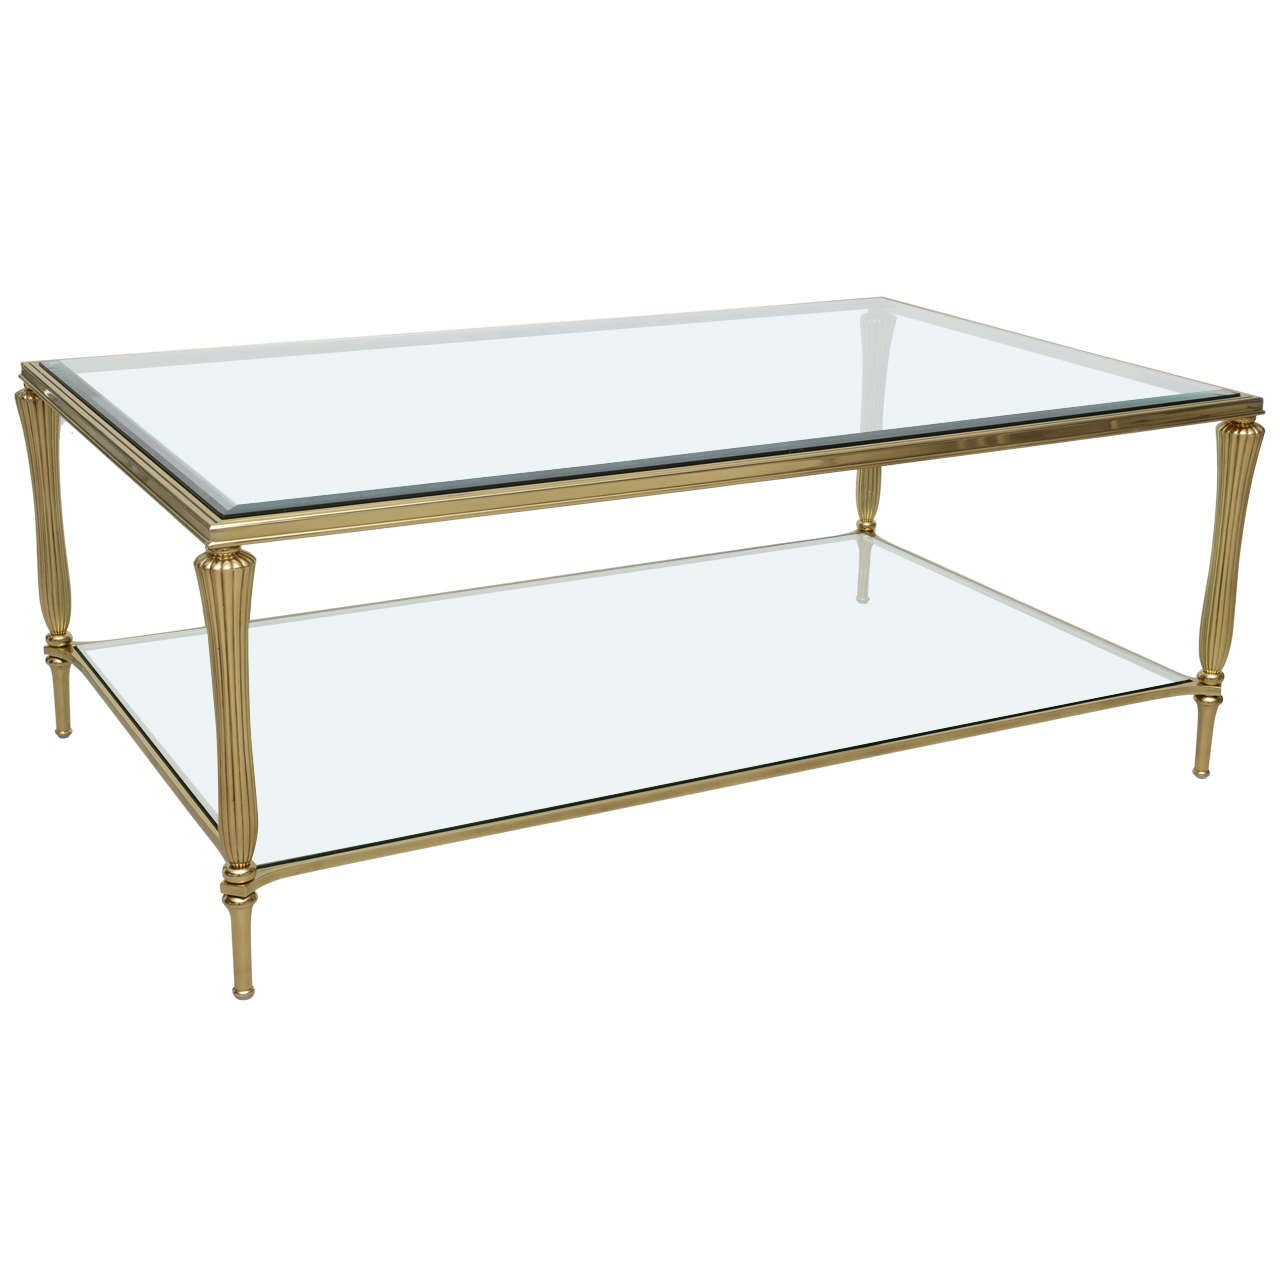 Vintage Brass And Glass Regency Style Coffee Table At 1stdibs